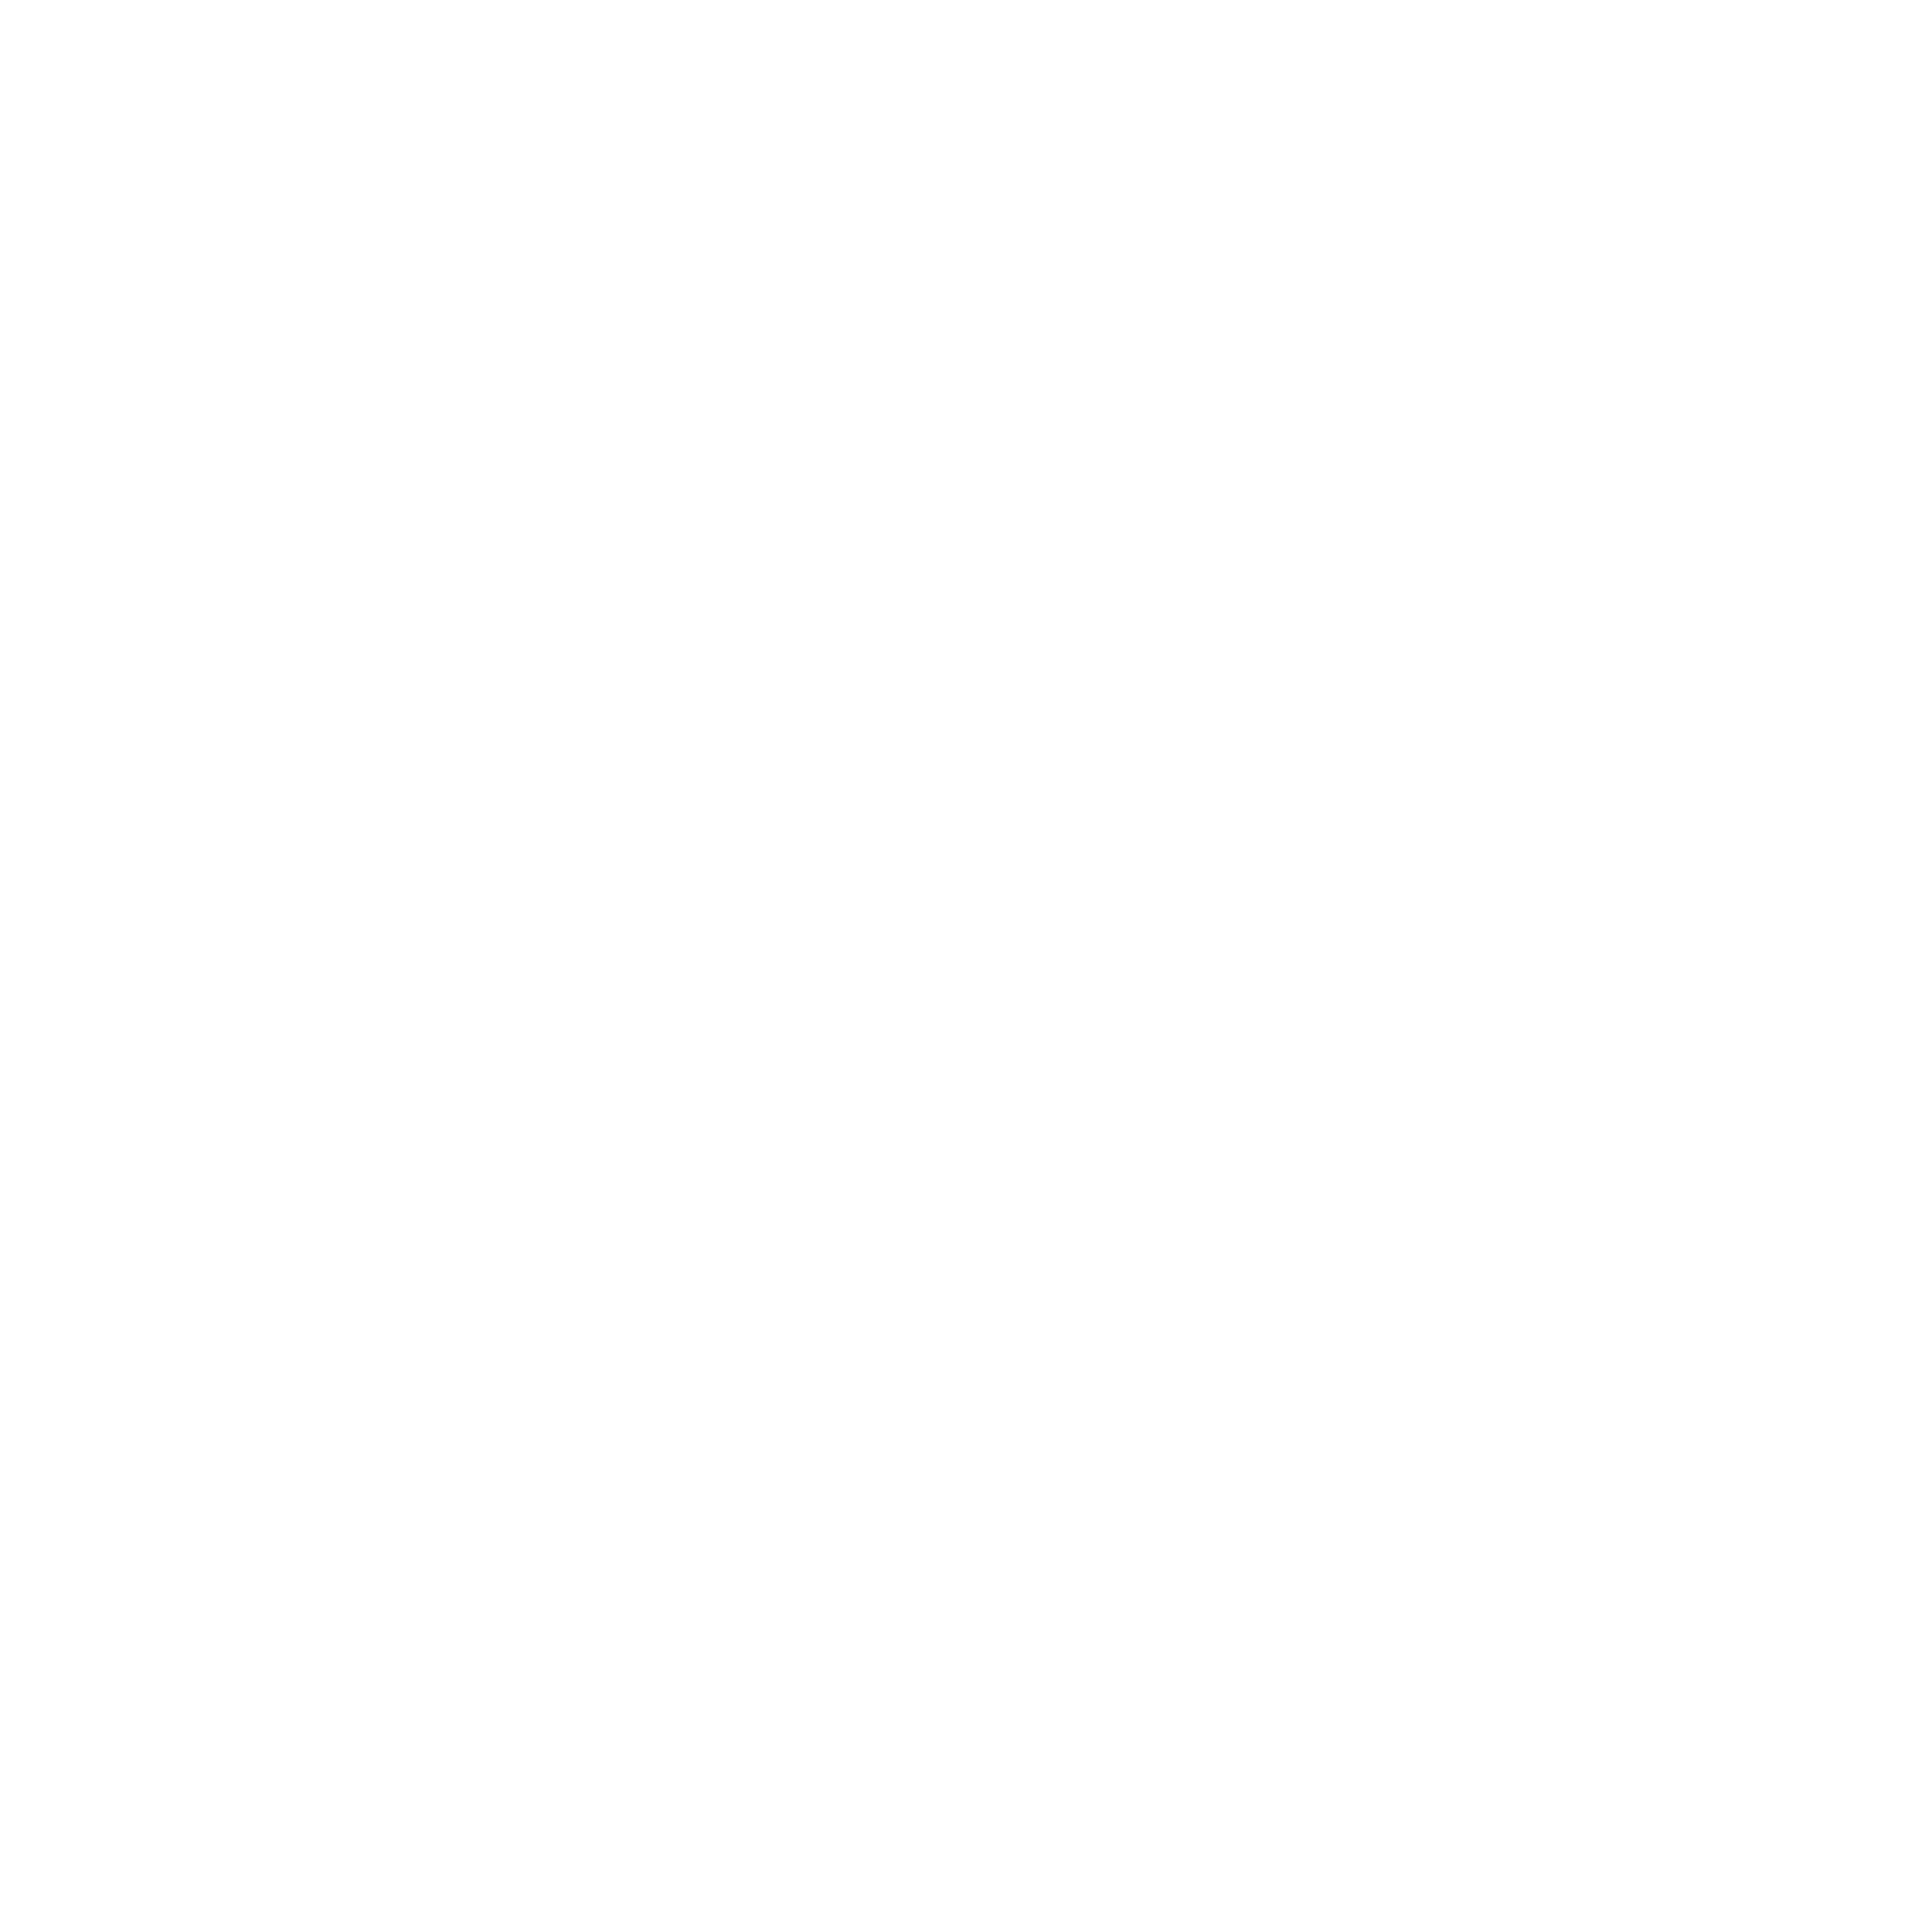 2000px-Sonicwall.png